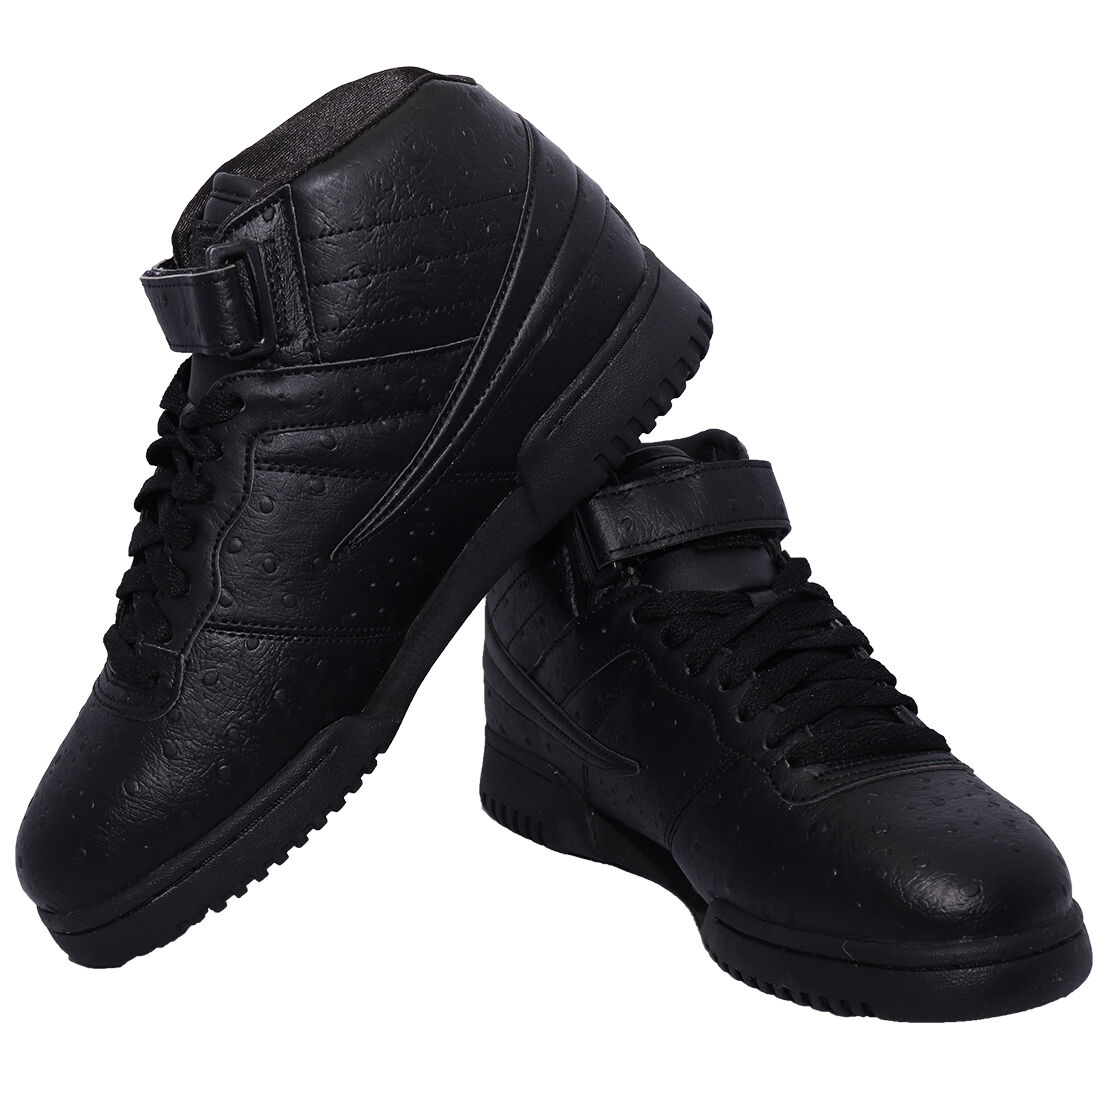 NEW Men Fila F13 F-13 OSTRICH PREMIUM Classic Mid High Top Basketball Shoes New shoes for men and women, limited time discount